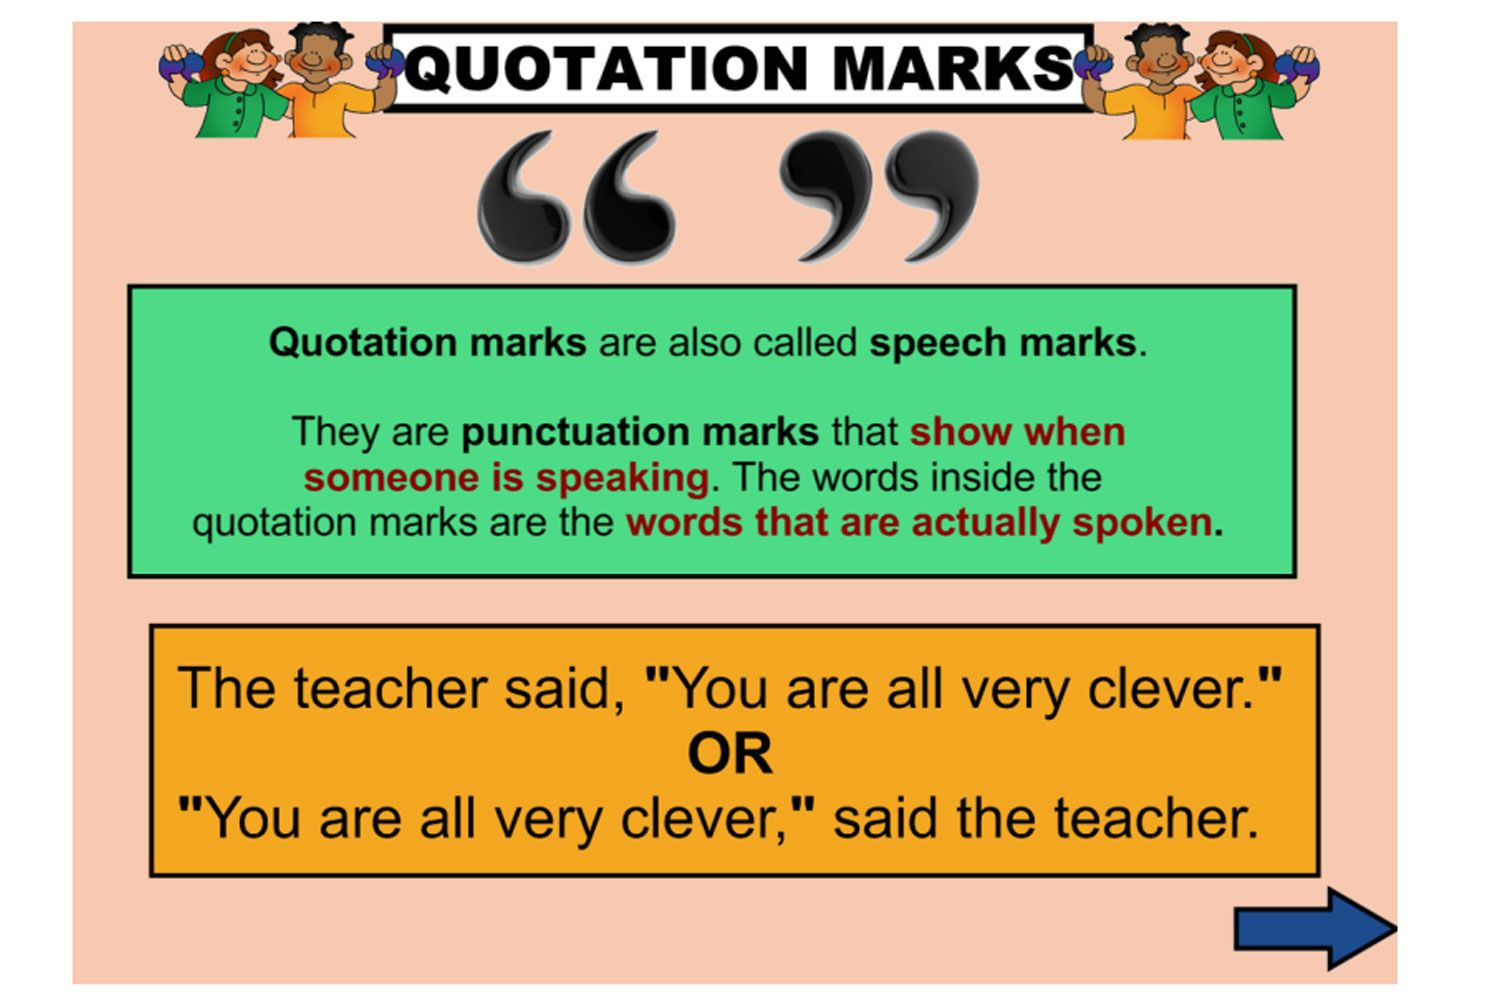 Learning How To Use Quotation Marks Correctly Can Be